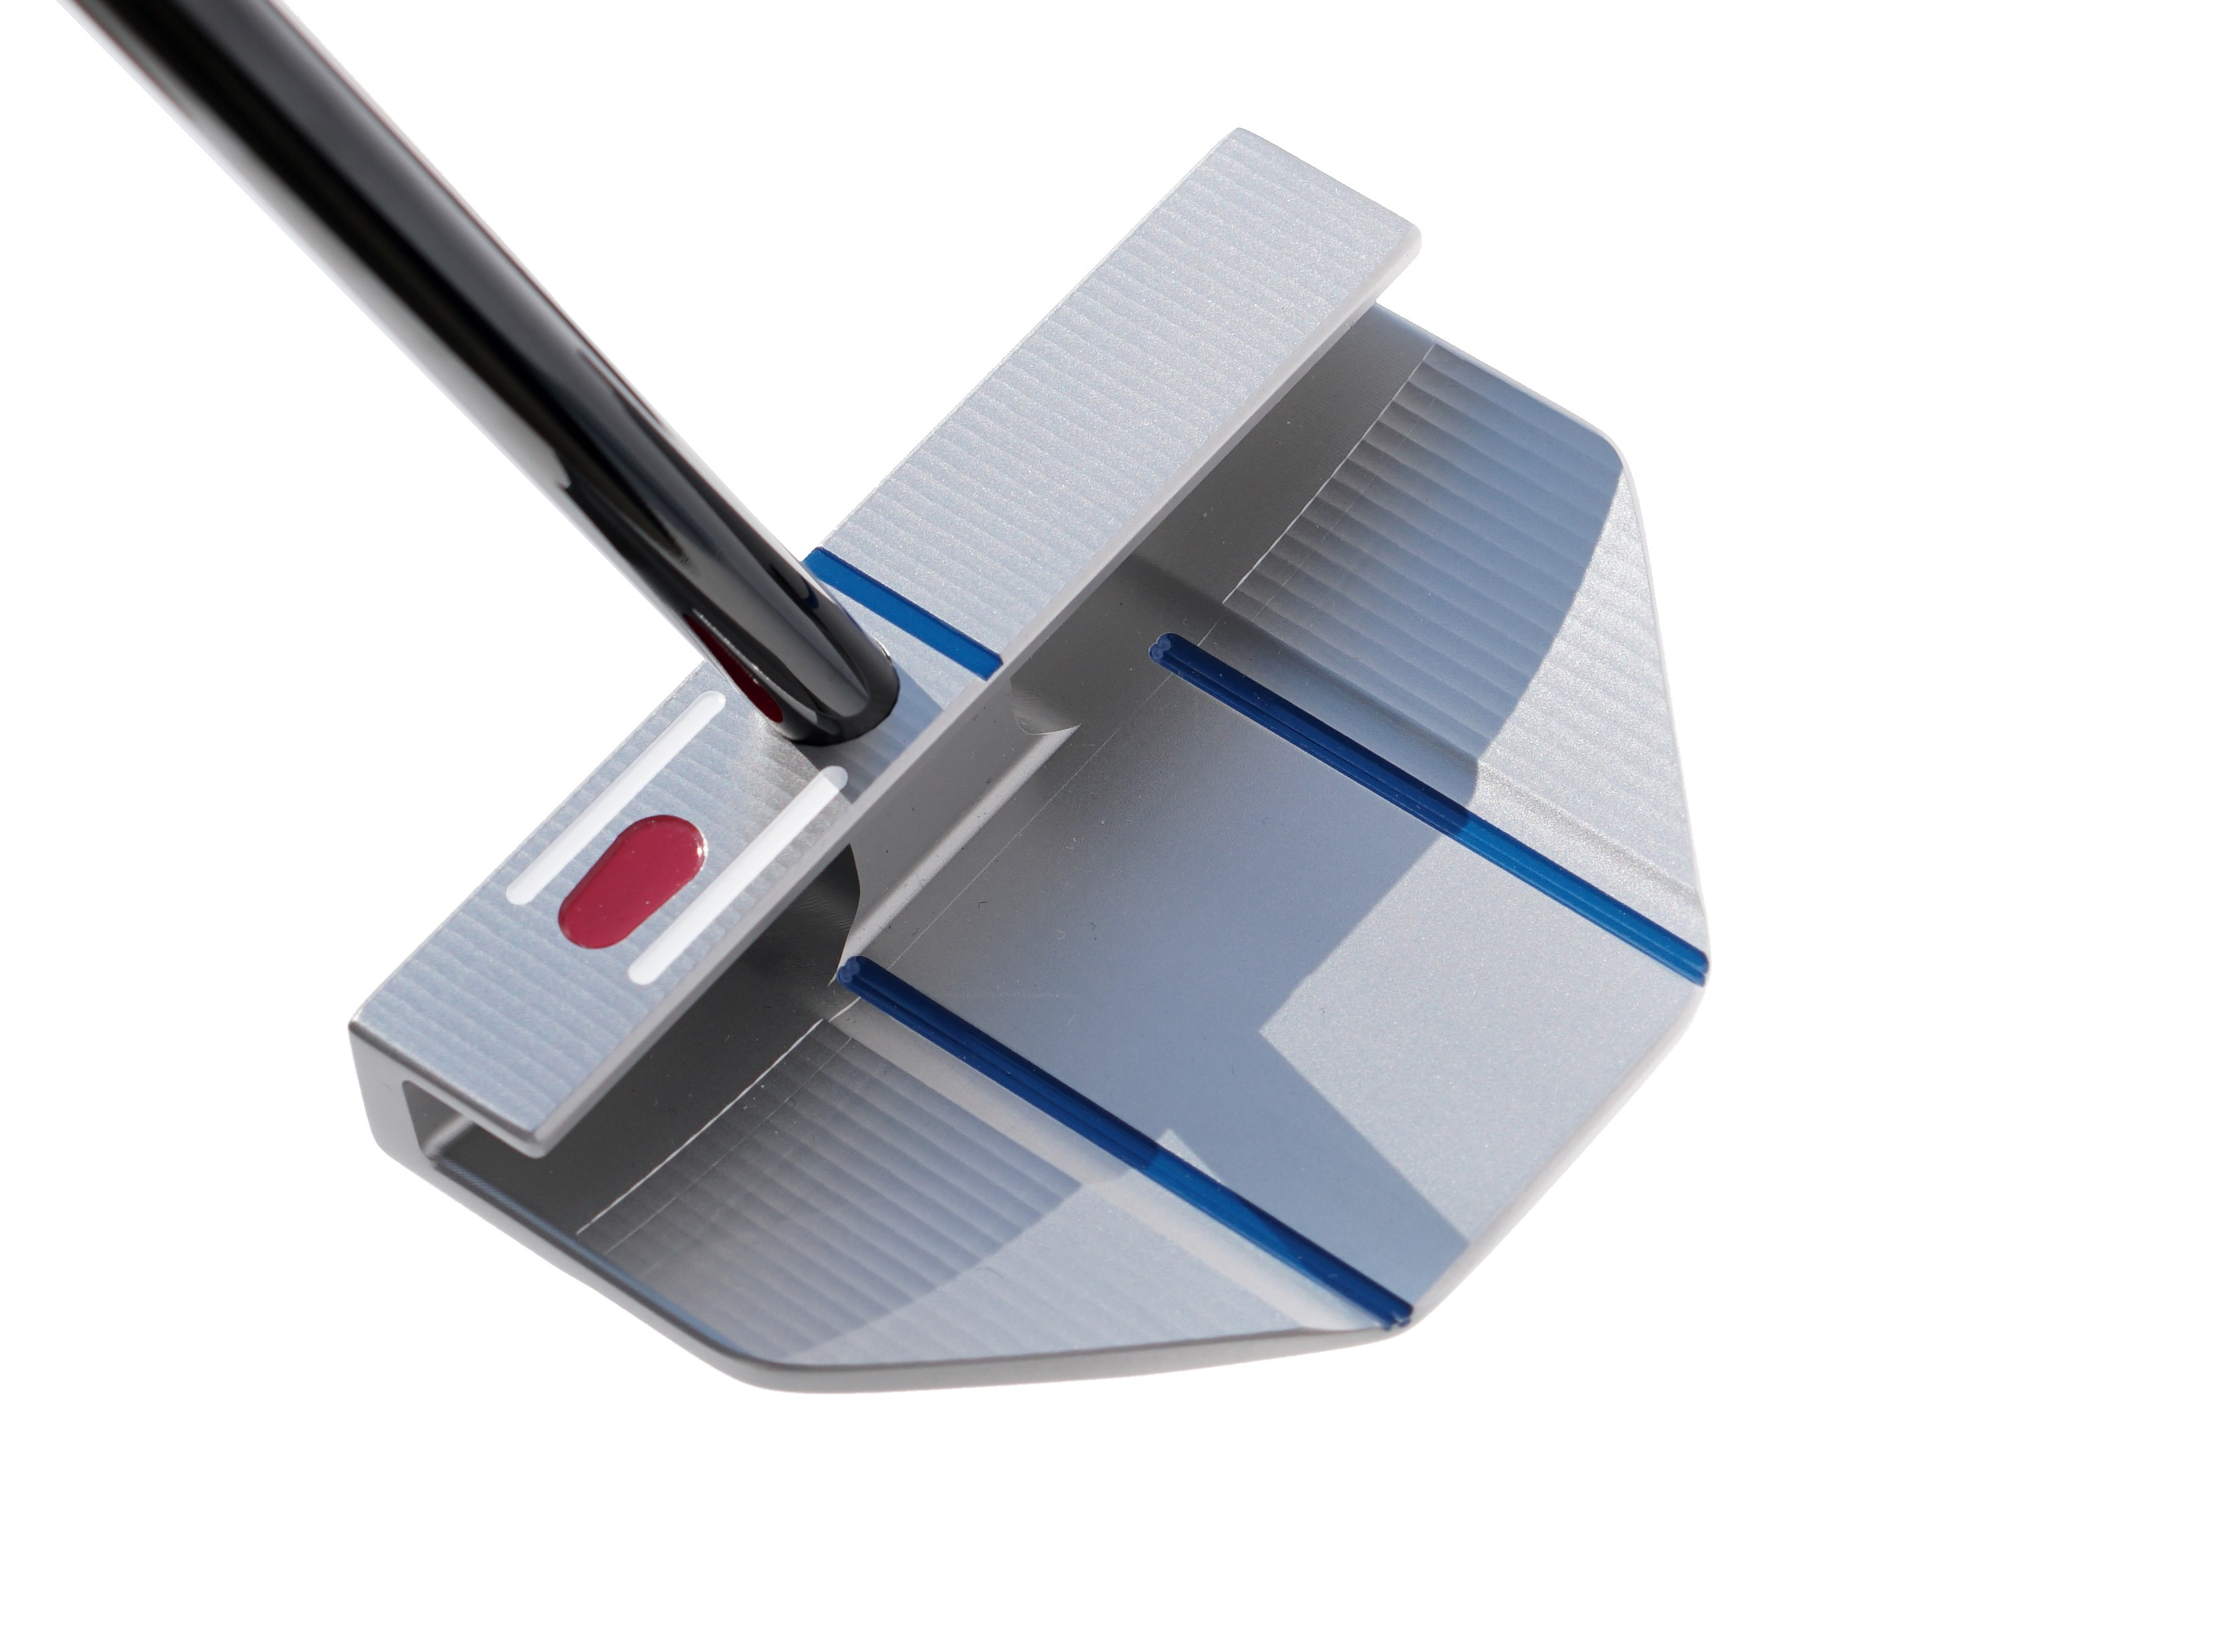 Platinum mTri-Mallet (P1421) < Out of Stock Until ~ May 1 >>>